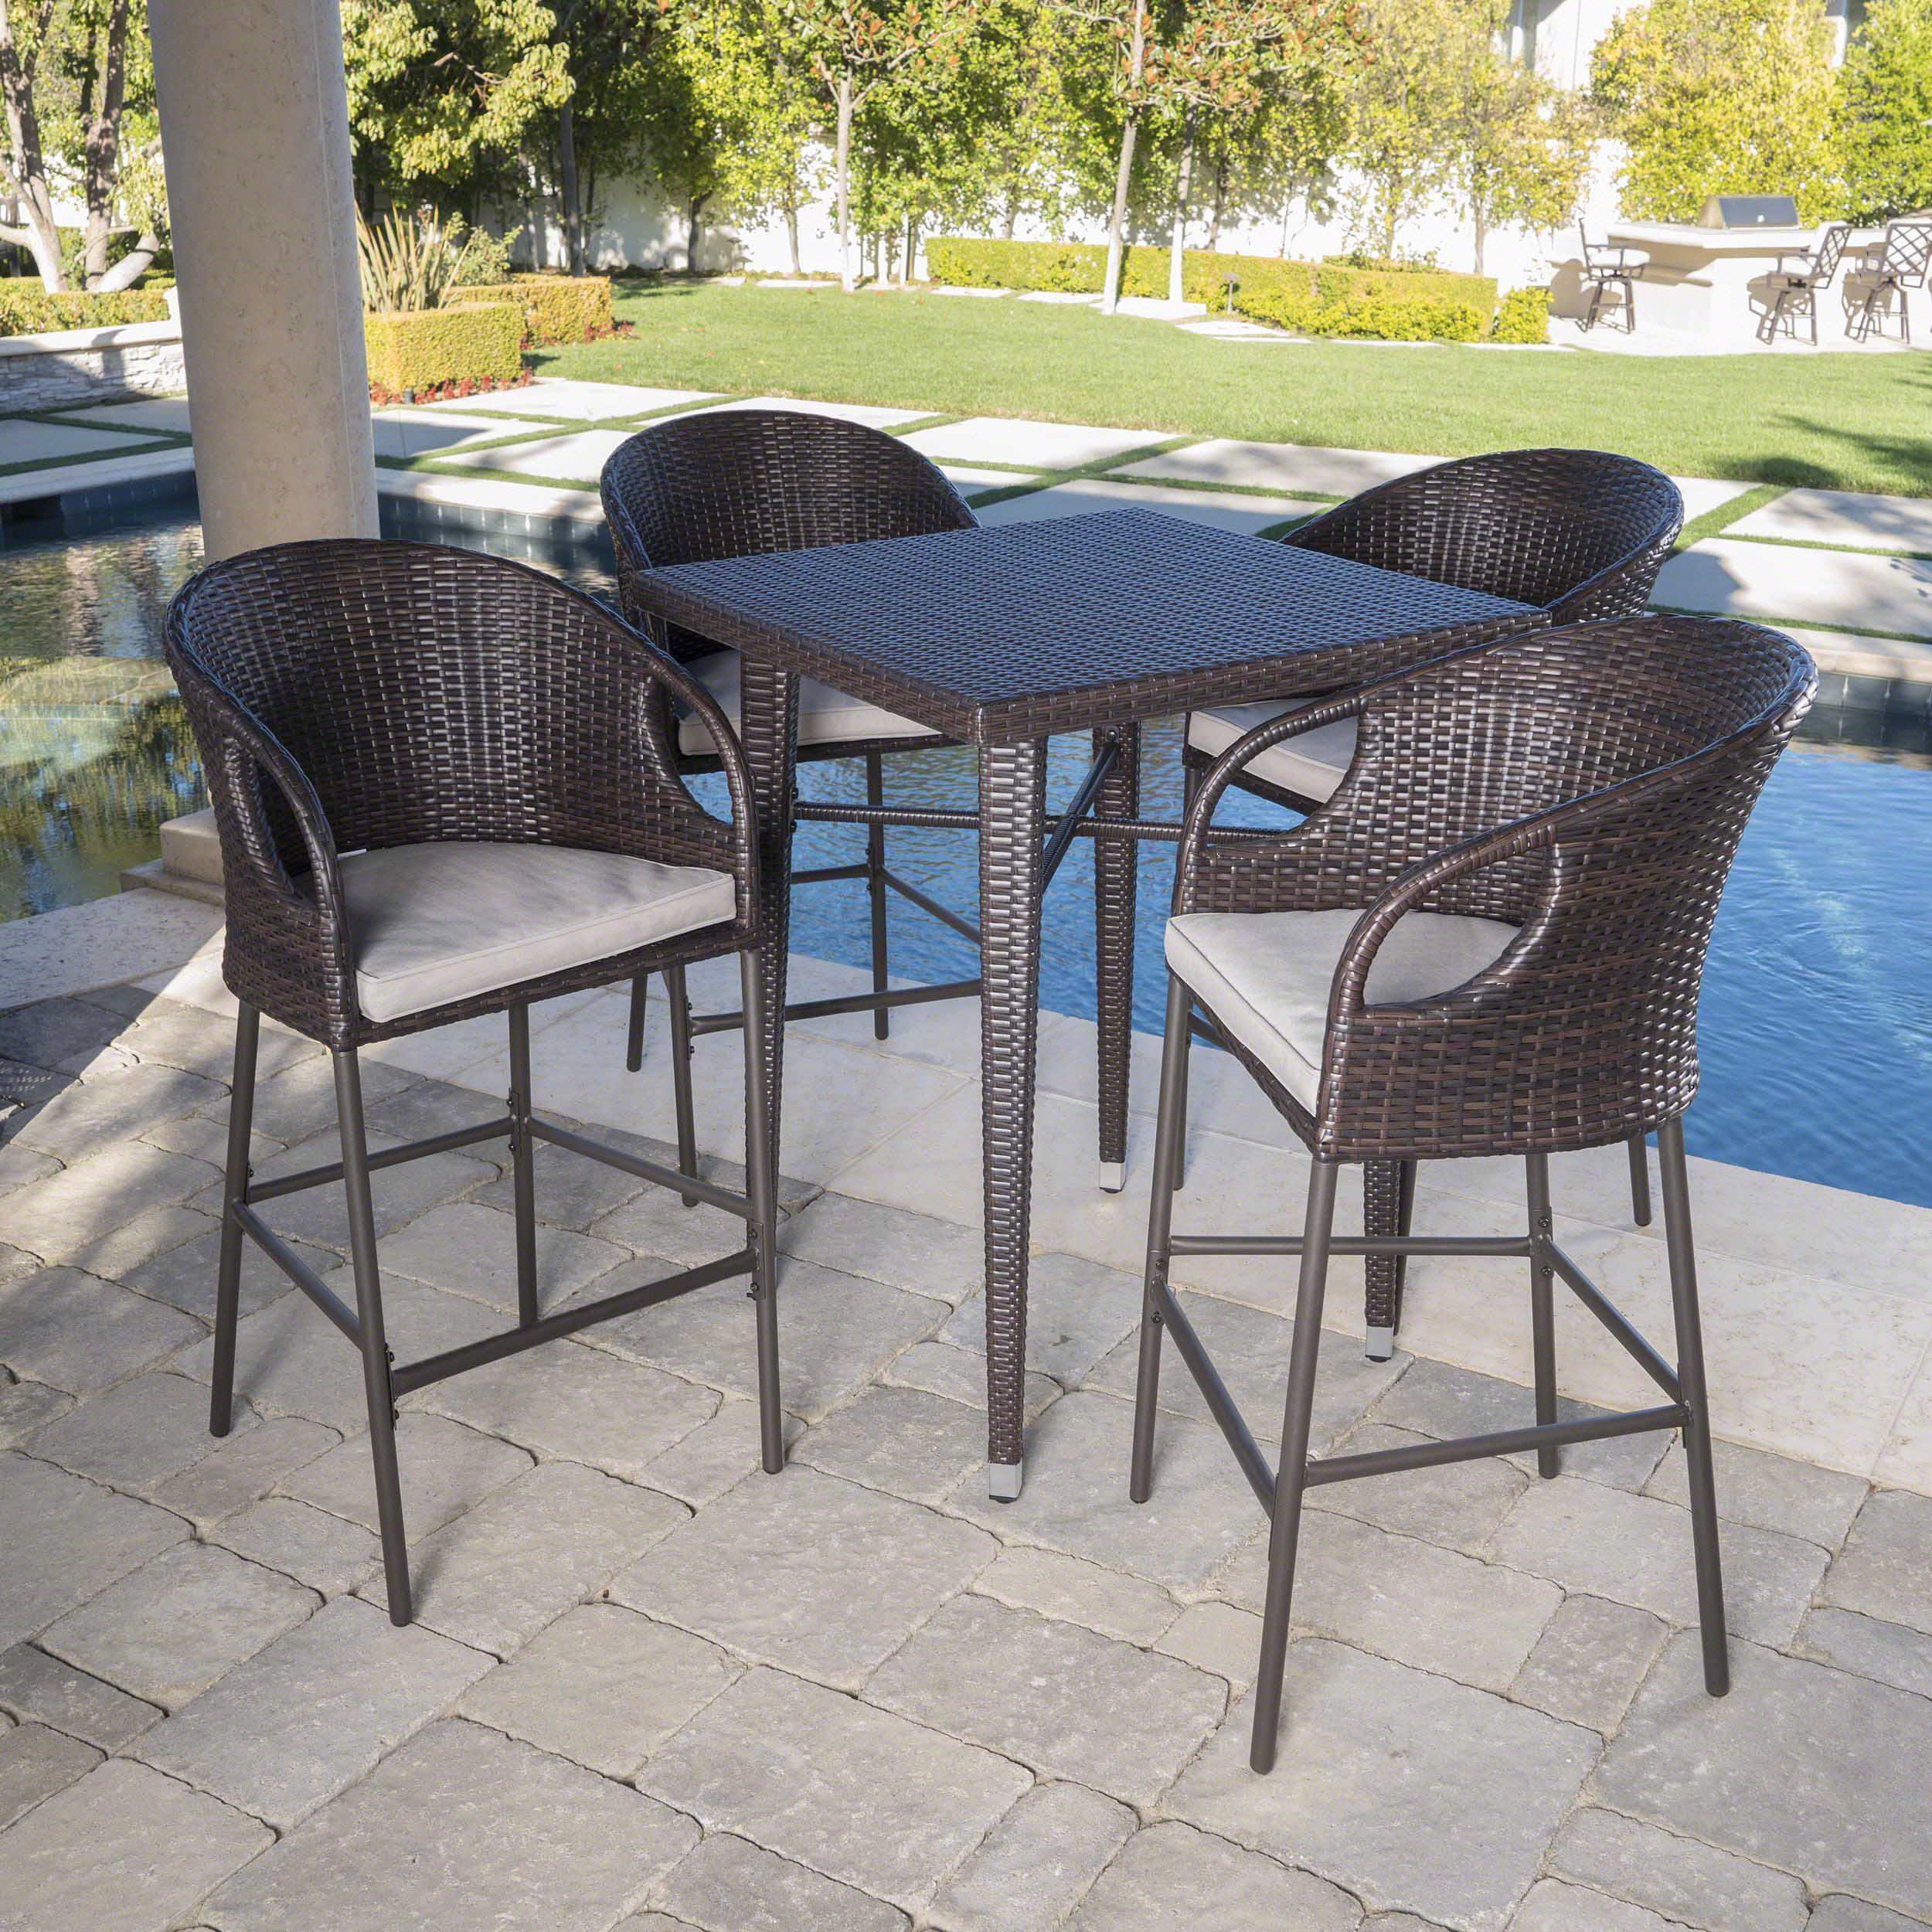 Ching Outdoor 5 Piece Bar Height Dining Set With Cushions